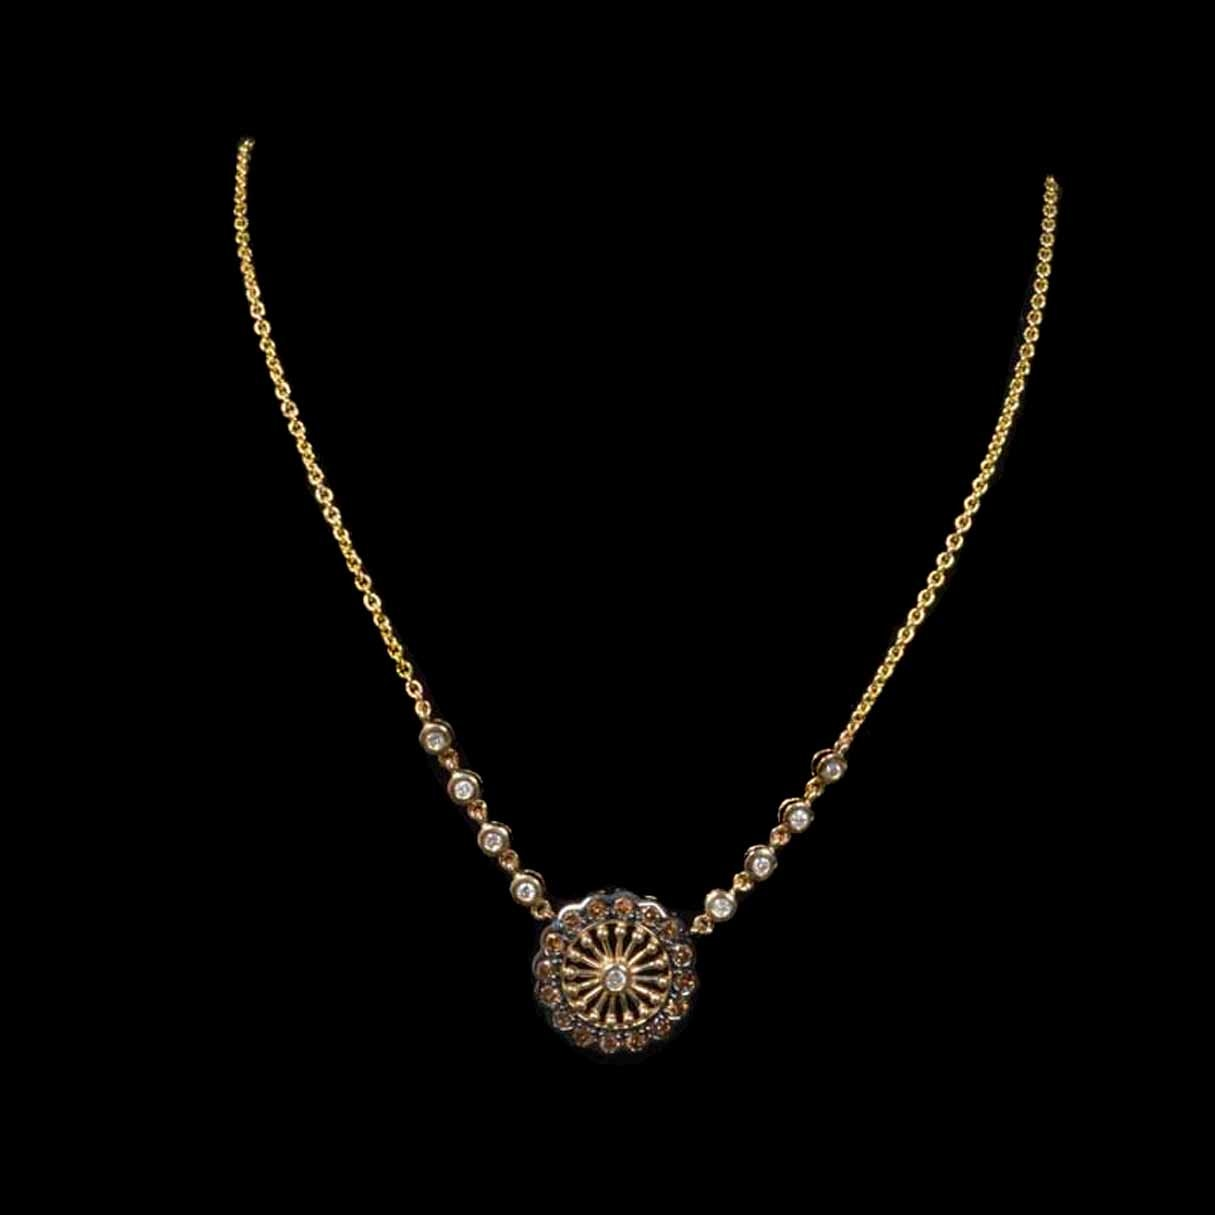 14K Gold Chocolate and White Diamond Necklace